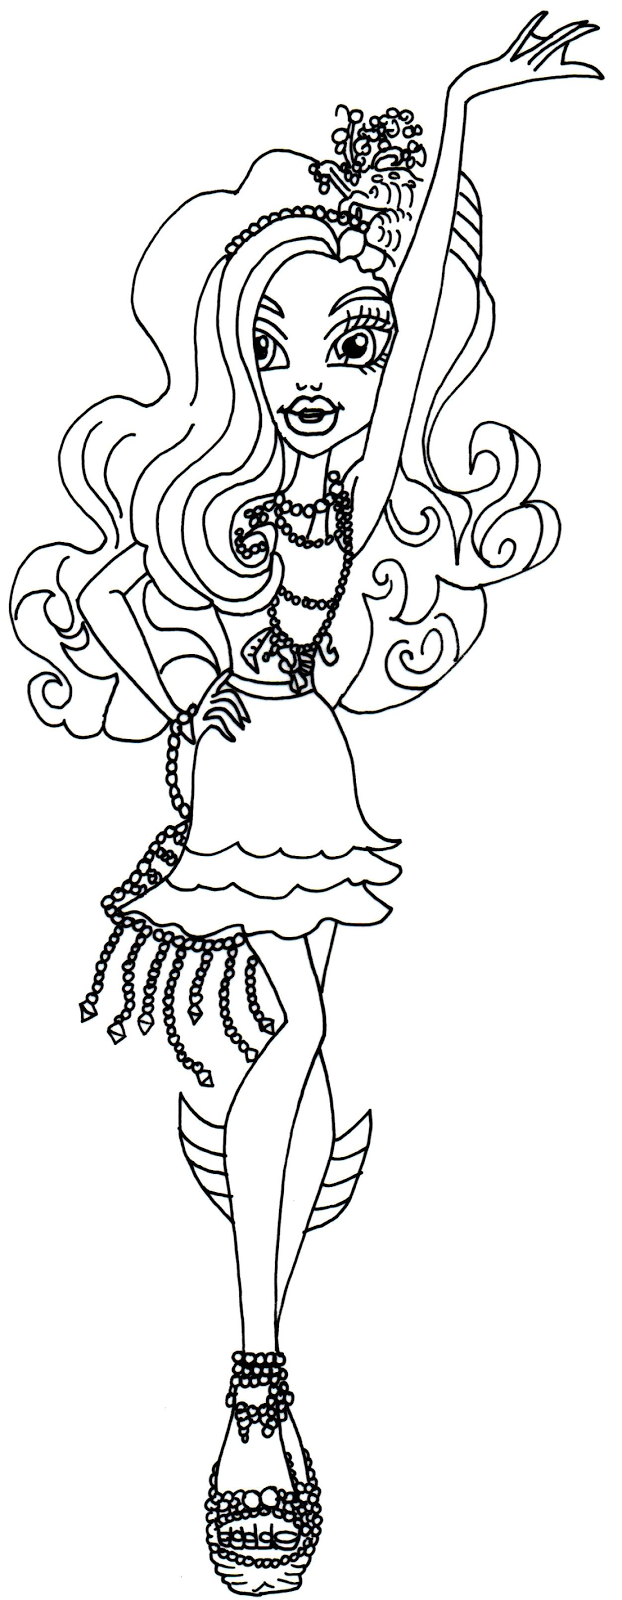 Lagoona Blue Coloring Pages At Getdrawings Com Free For Personal